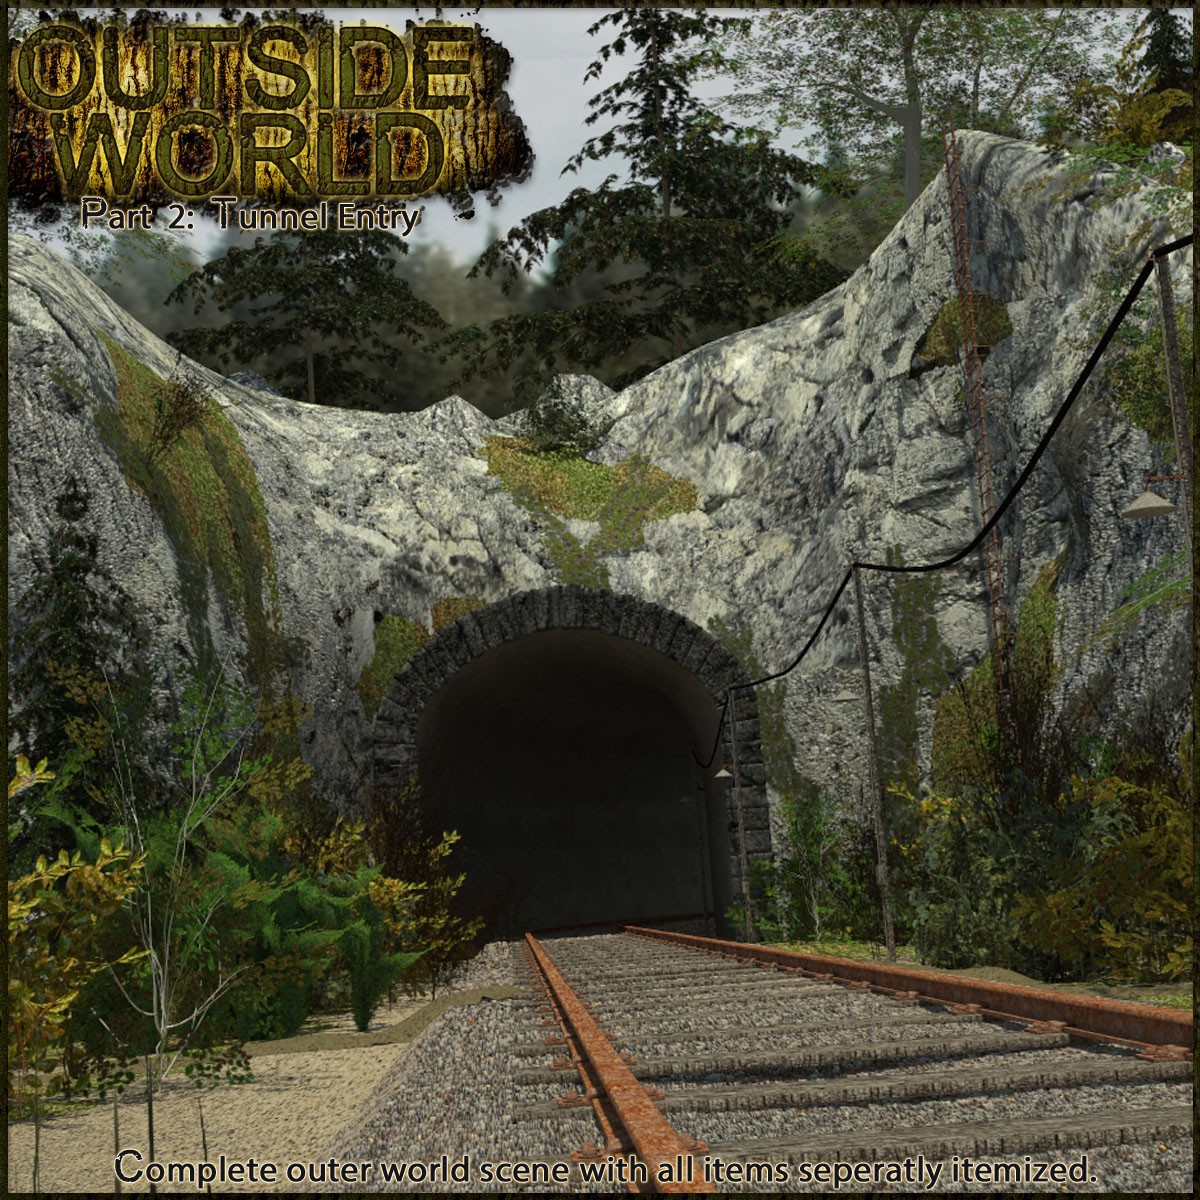 Outside World: Part2 - Tunnel Entry